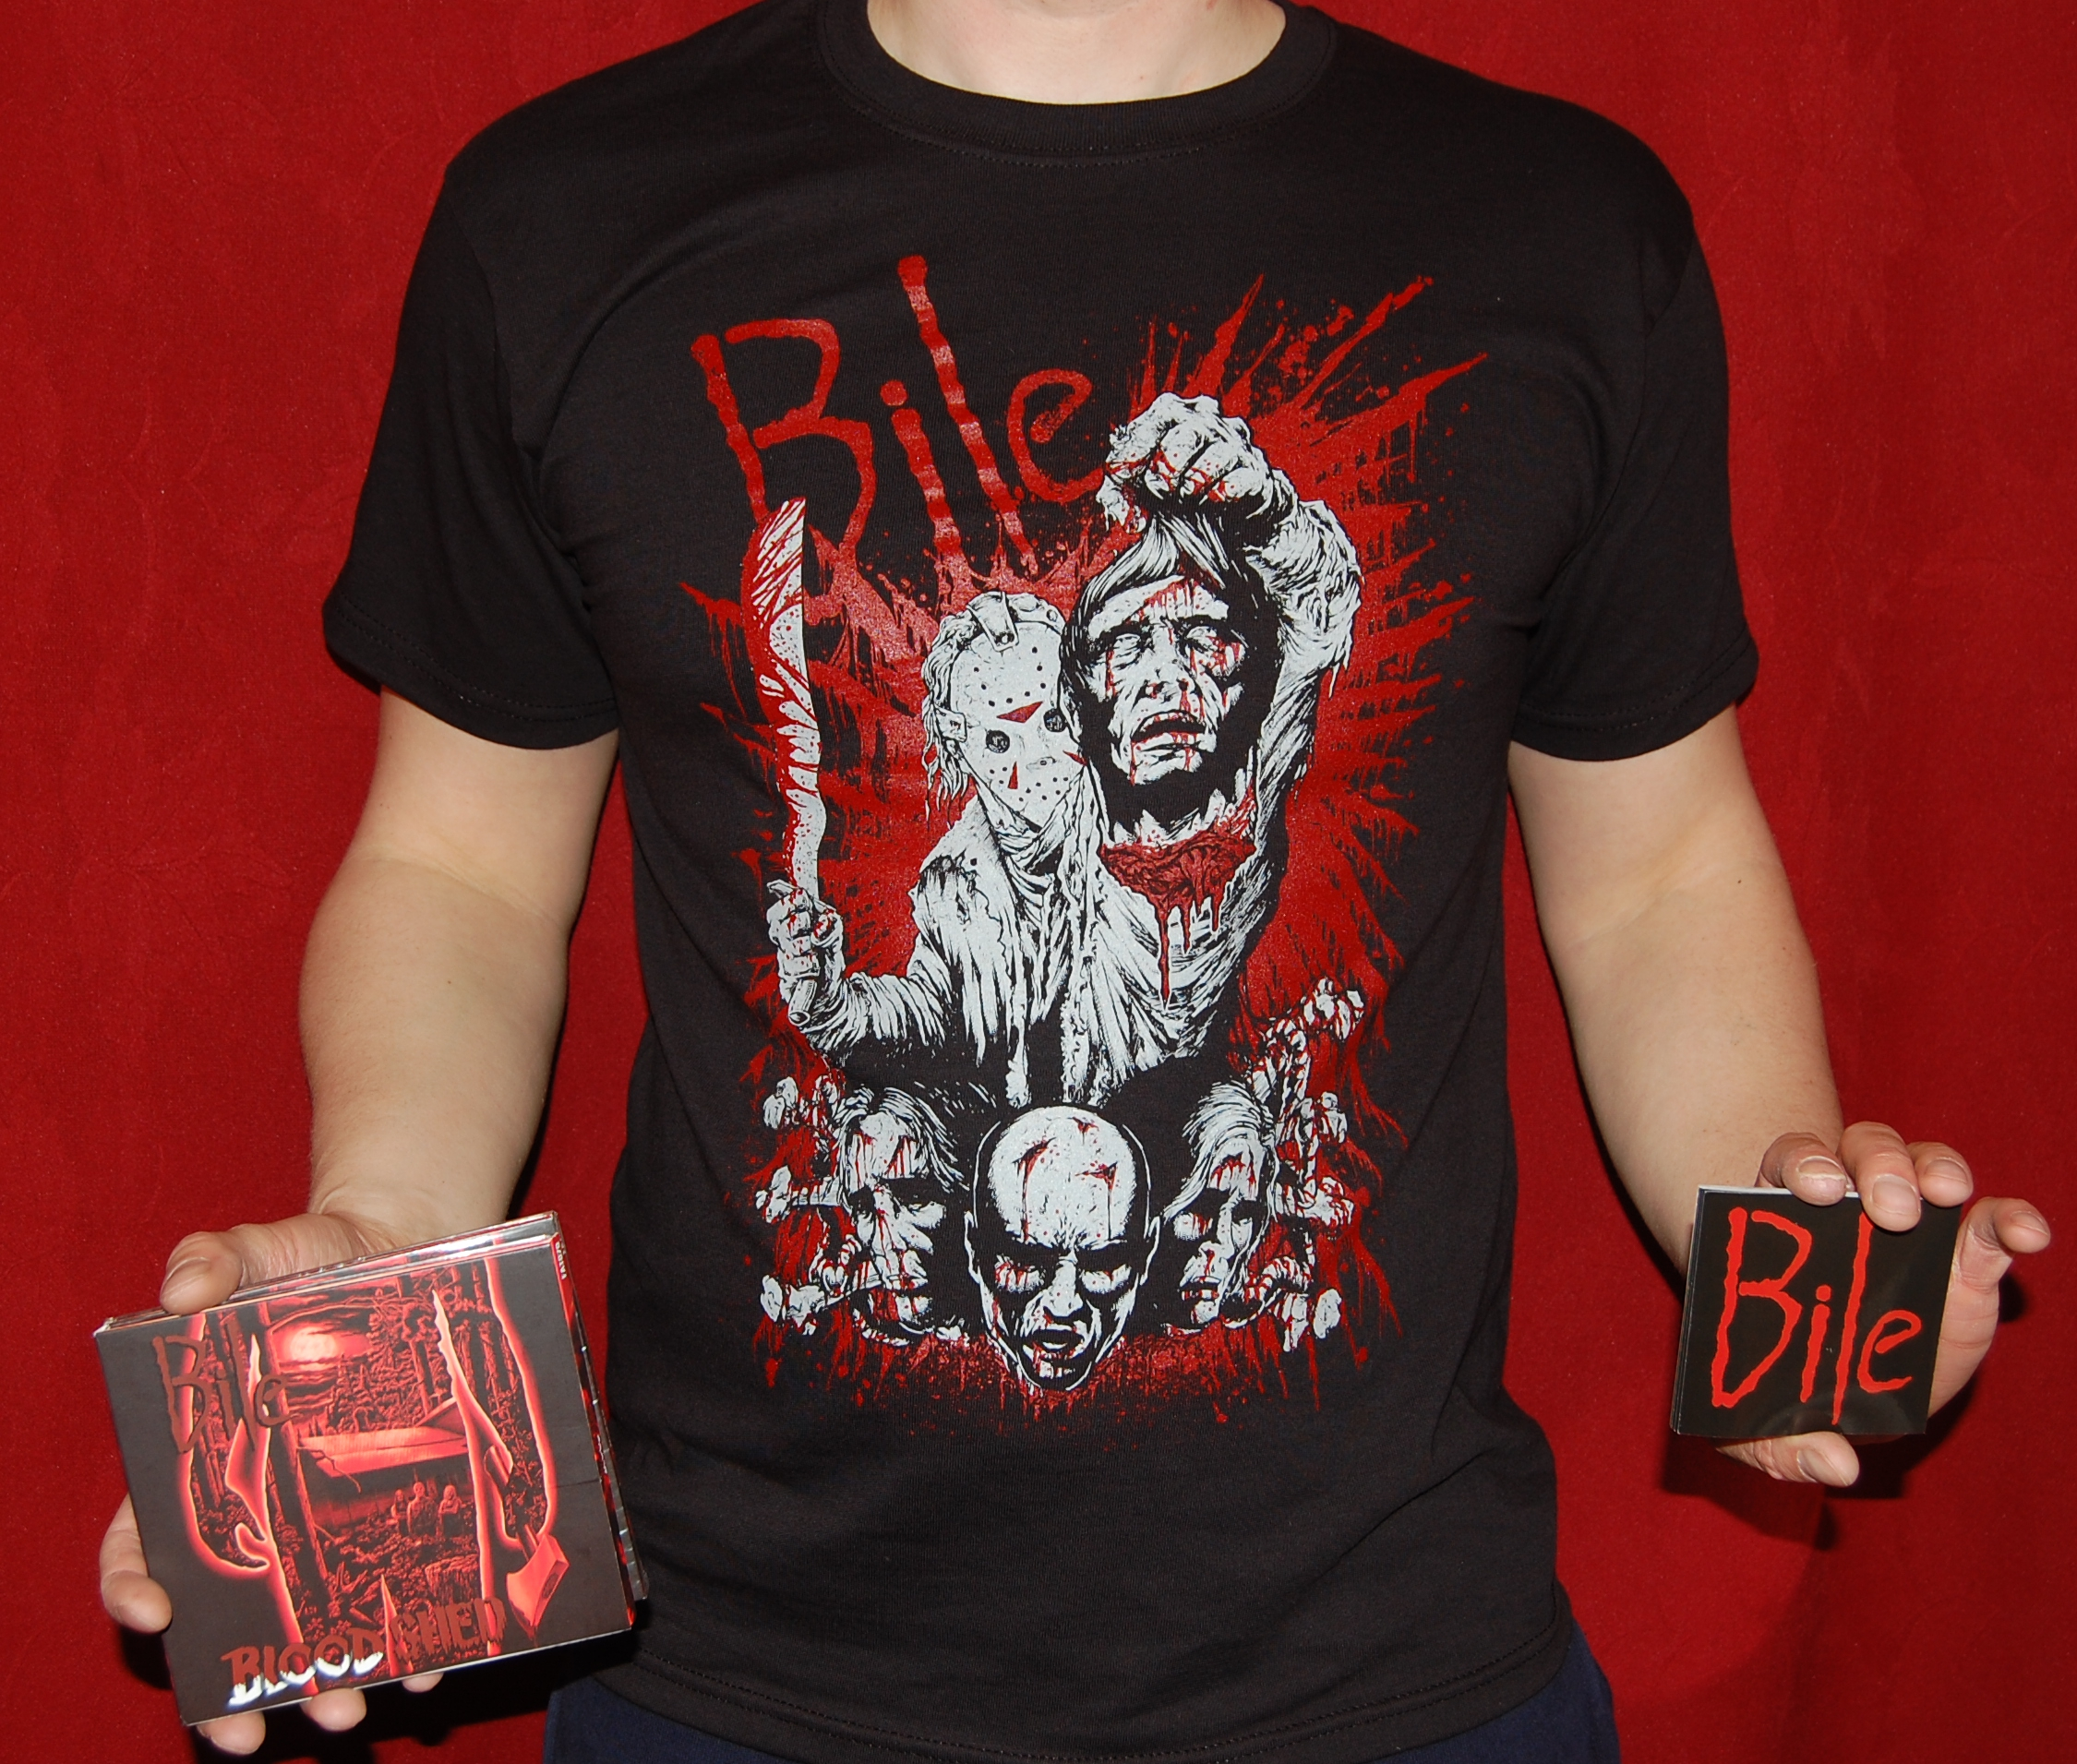 Bile-Shirt-2016 Design by Maciej Kamuda